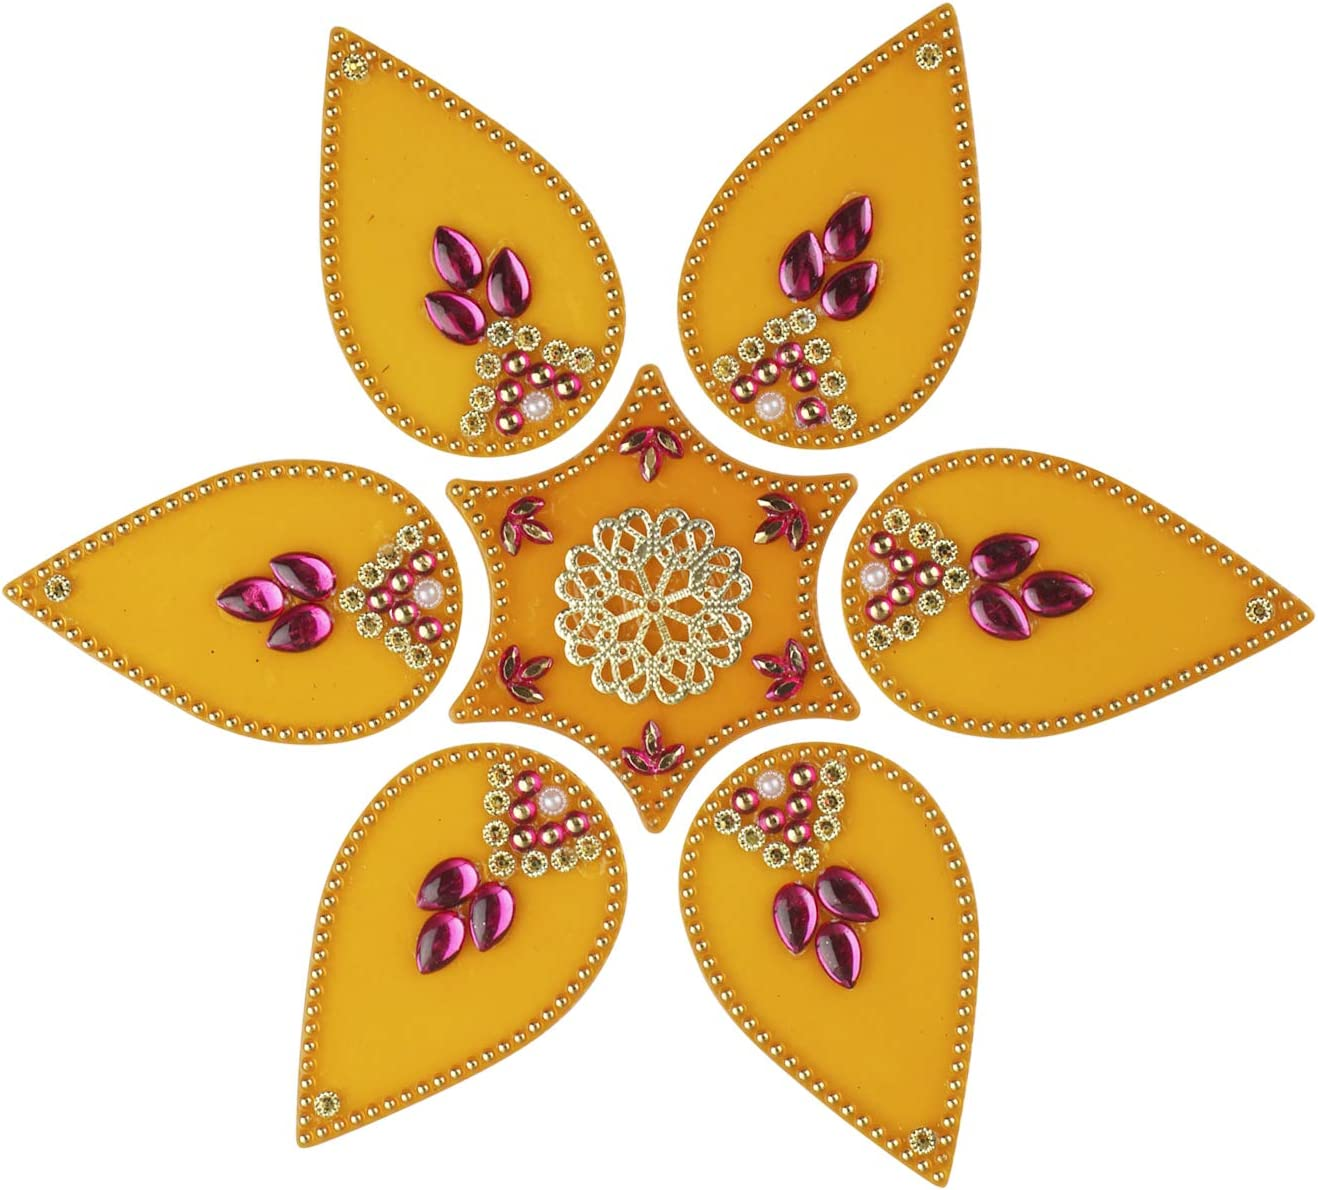 Acarya Flower Rangoli/Home Decor/Diwali/Gift for Home/Interior Handcrafted/Floor Stickers/Wall Stickers/Wall Decoration/Floor Decoration (Yellow) - 7 Pcs